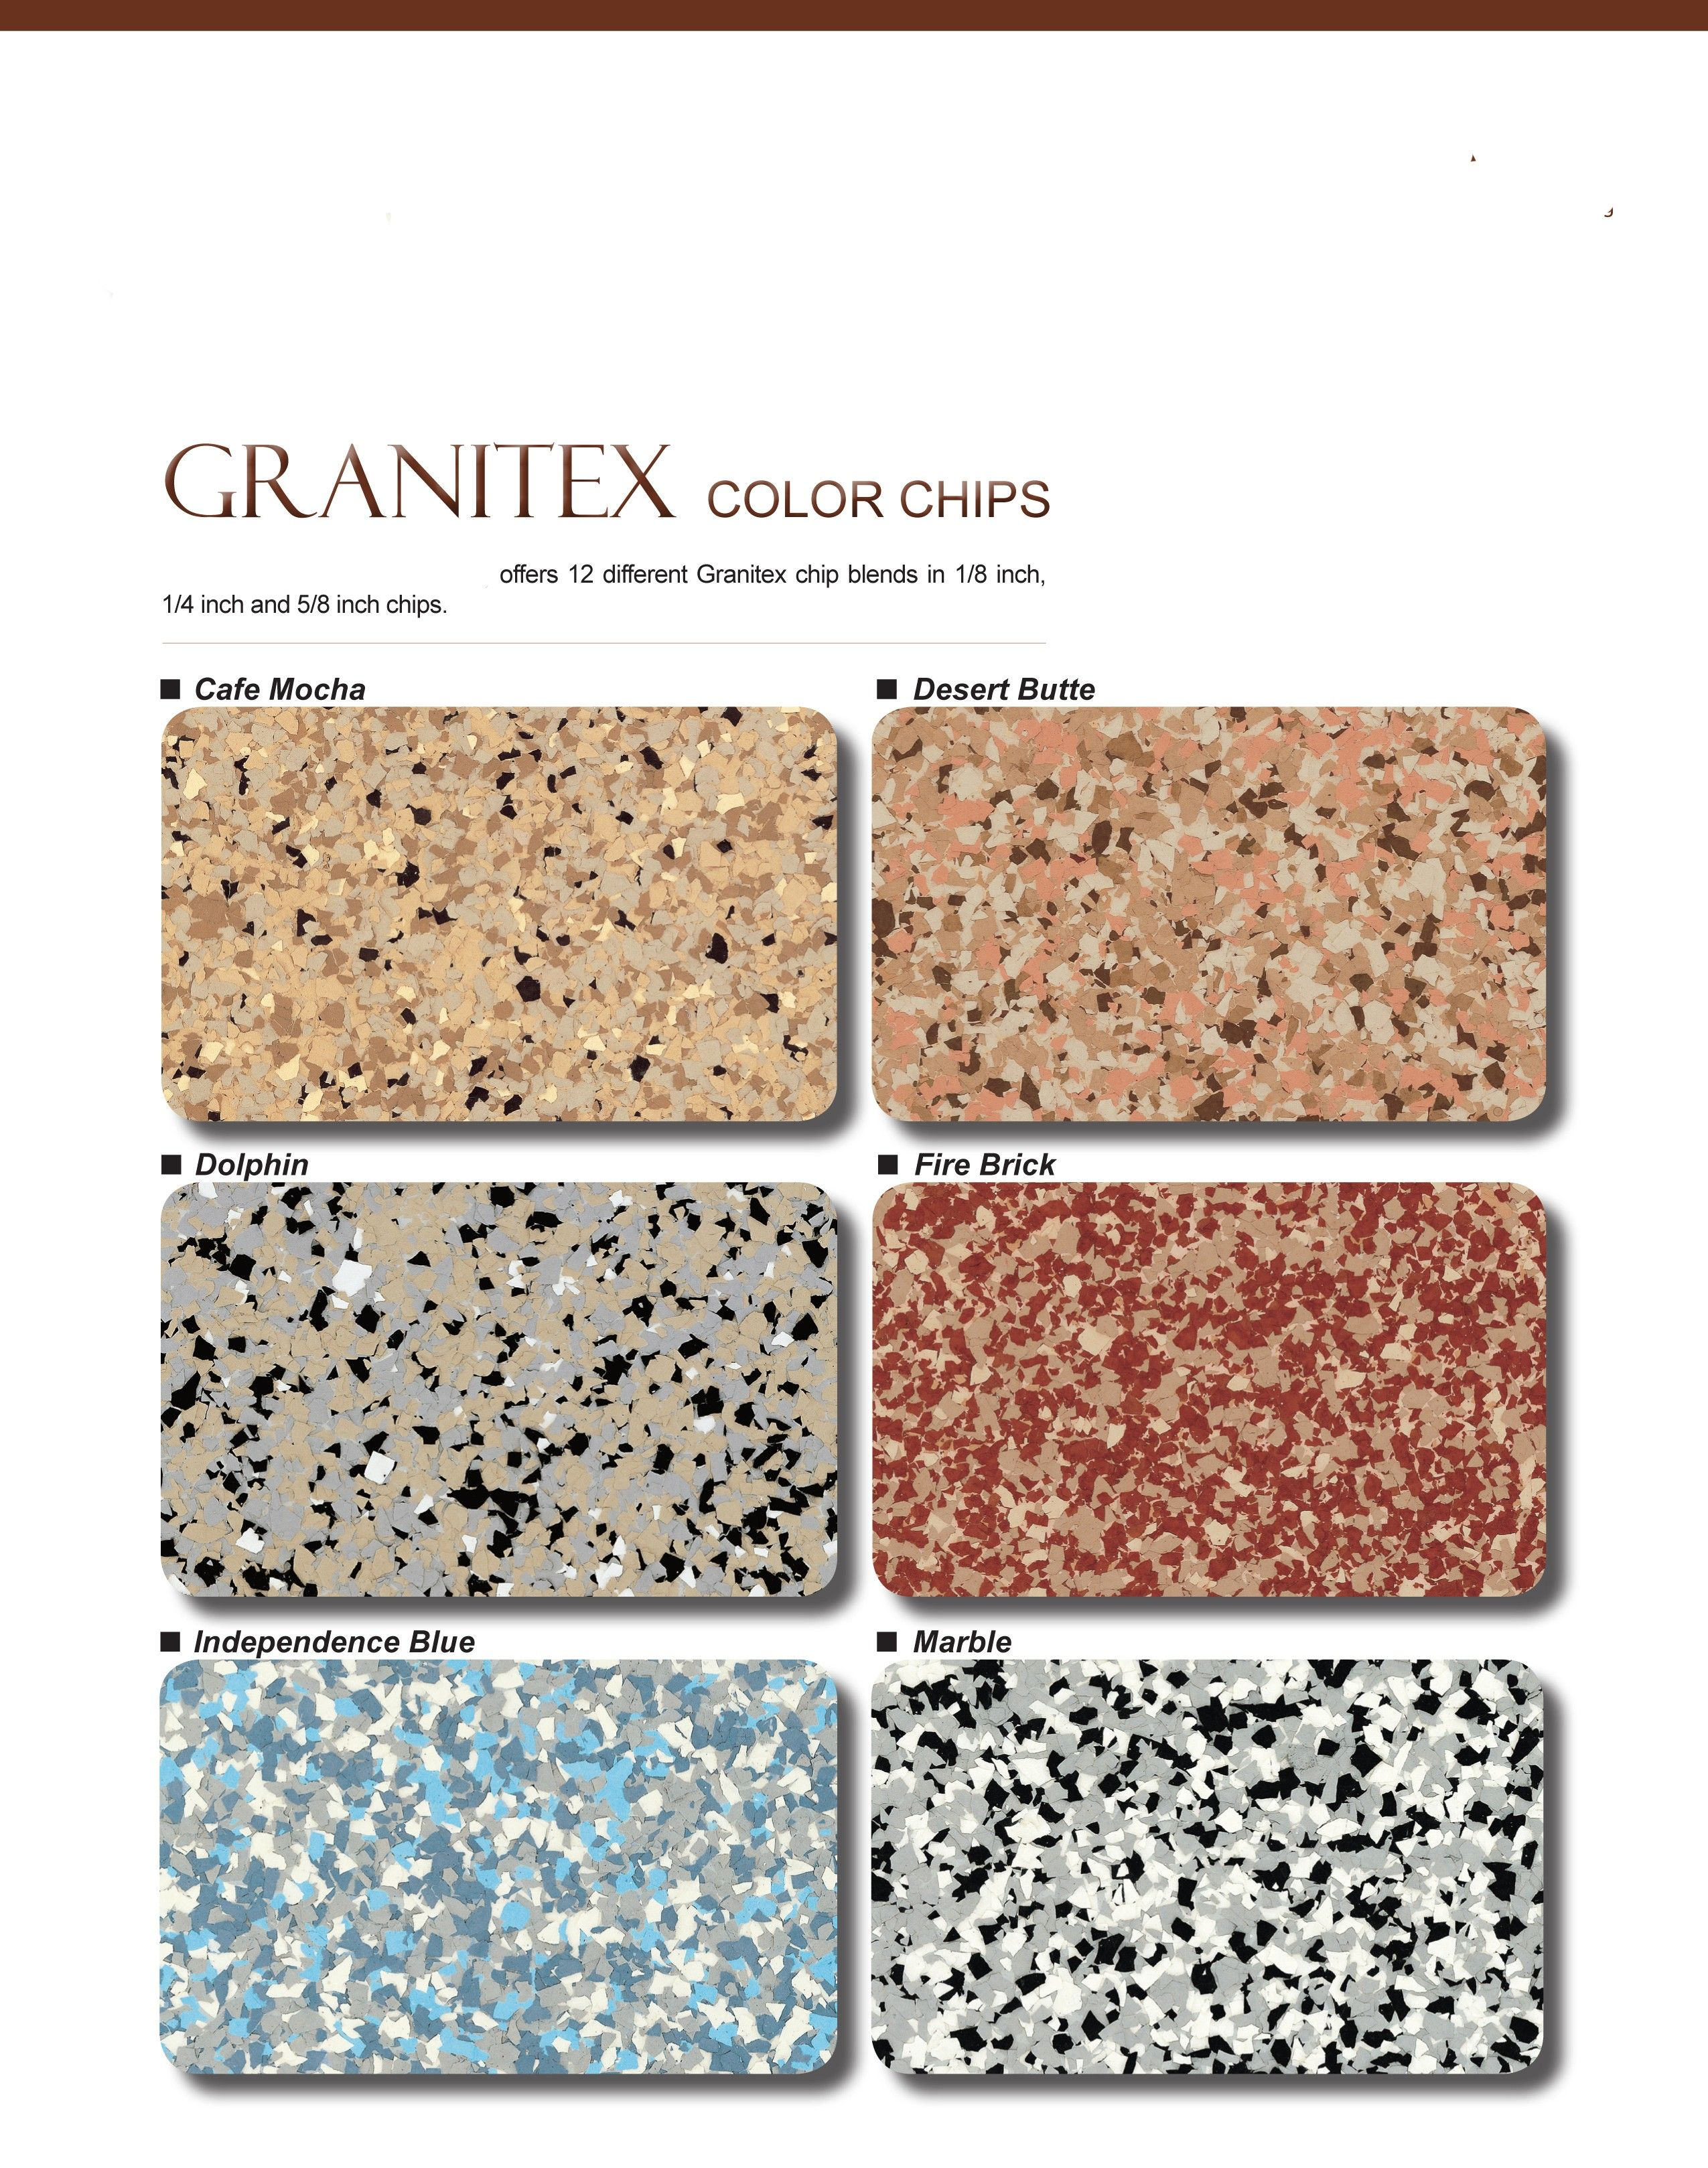 Granitex color chart. I like the Cafe Mocha for a countertop ...